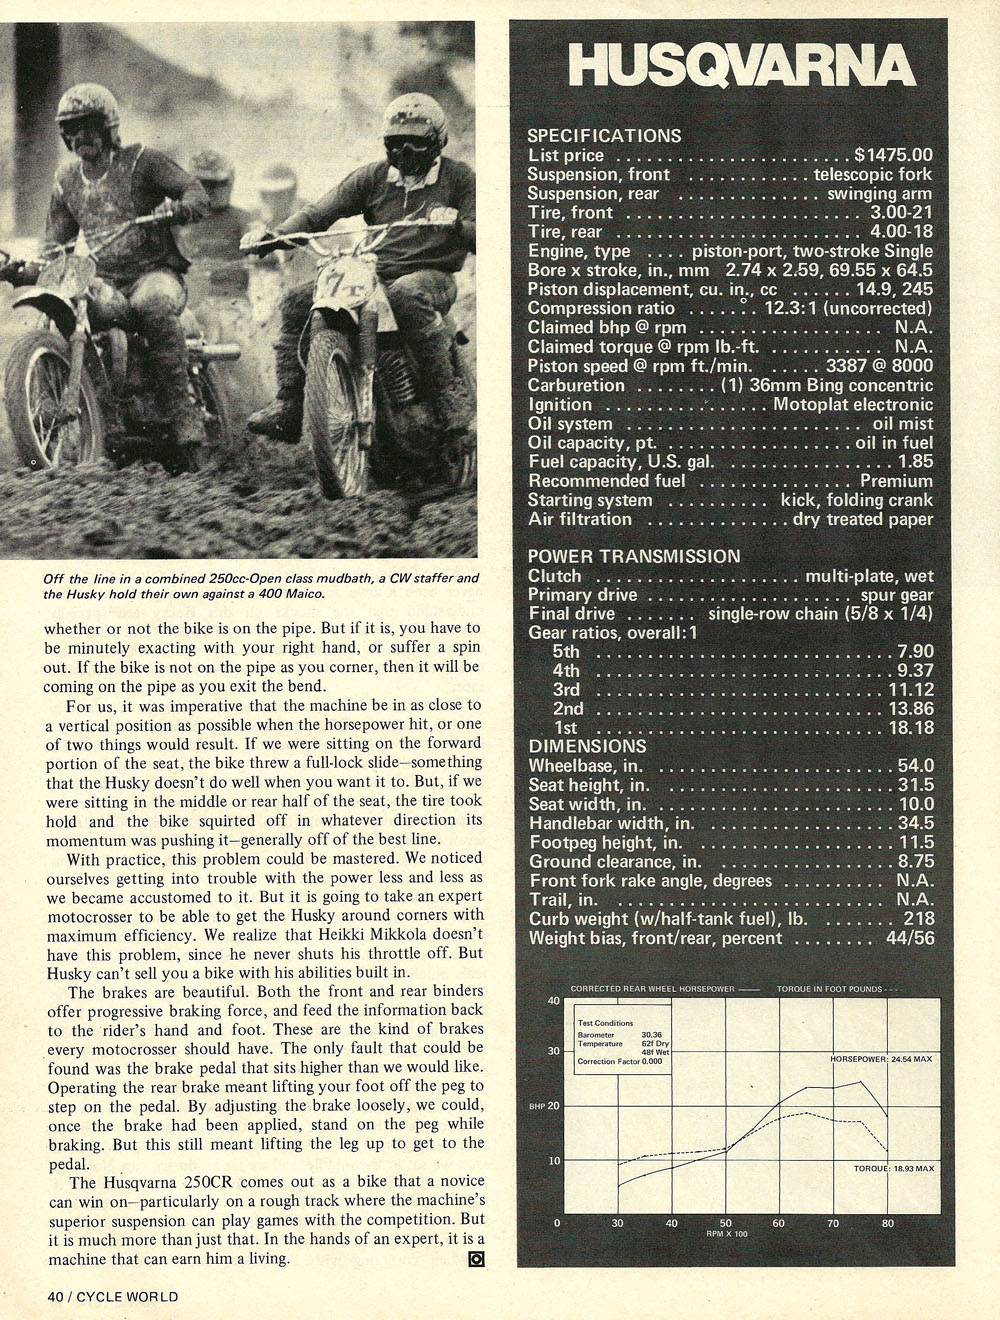 1974 Husqvarna 250 CR road test 05.jpg